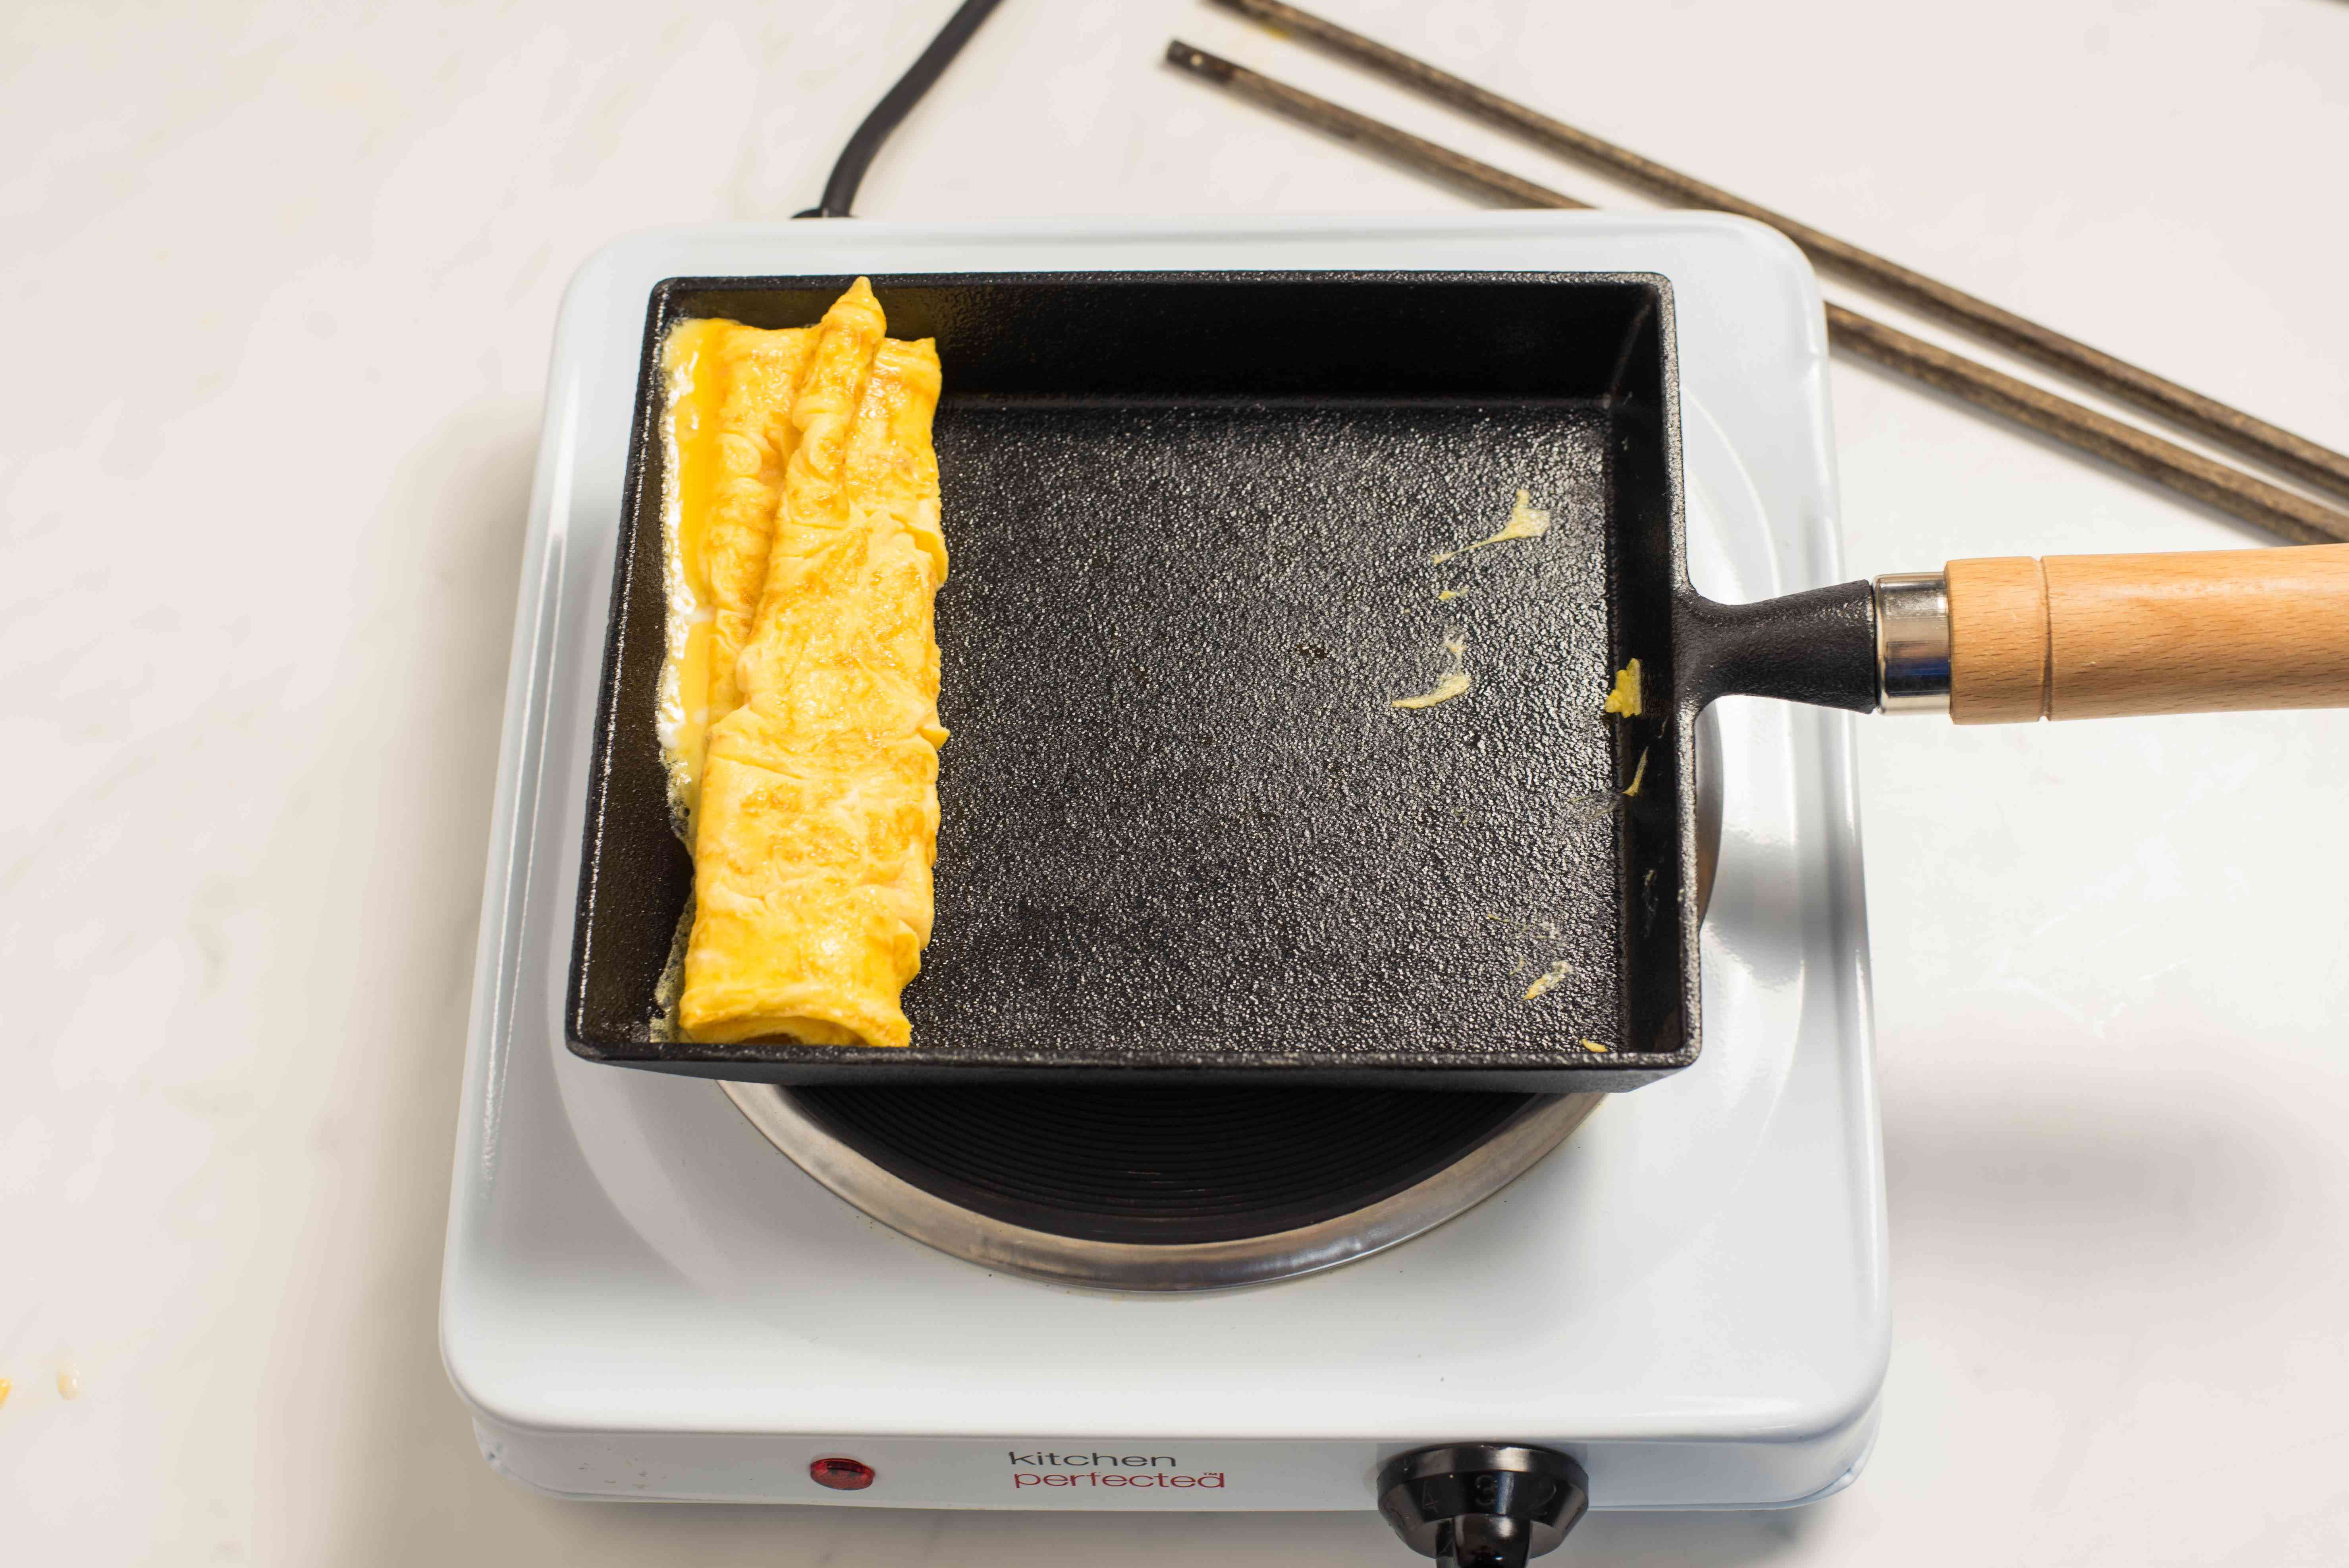 Cook until halfway done, then roll toward bottom of pan